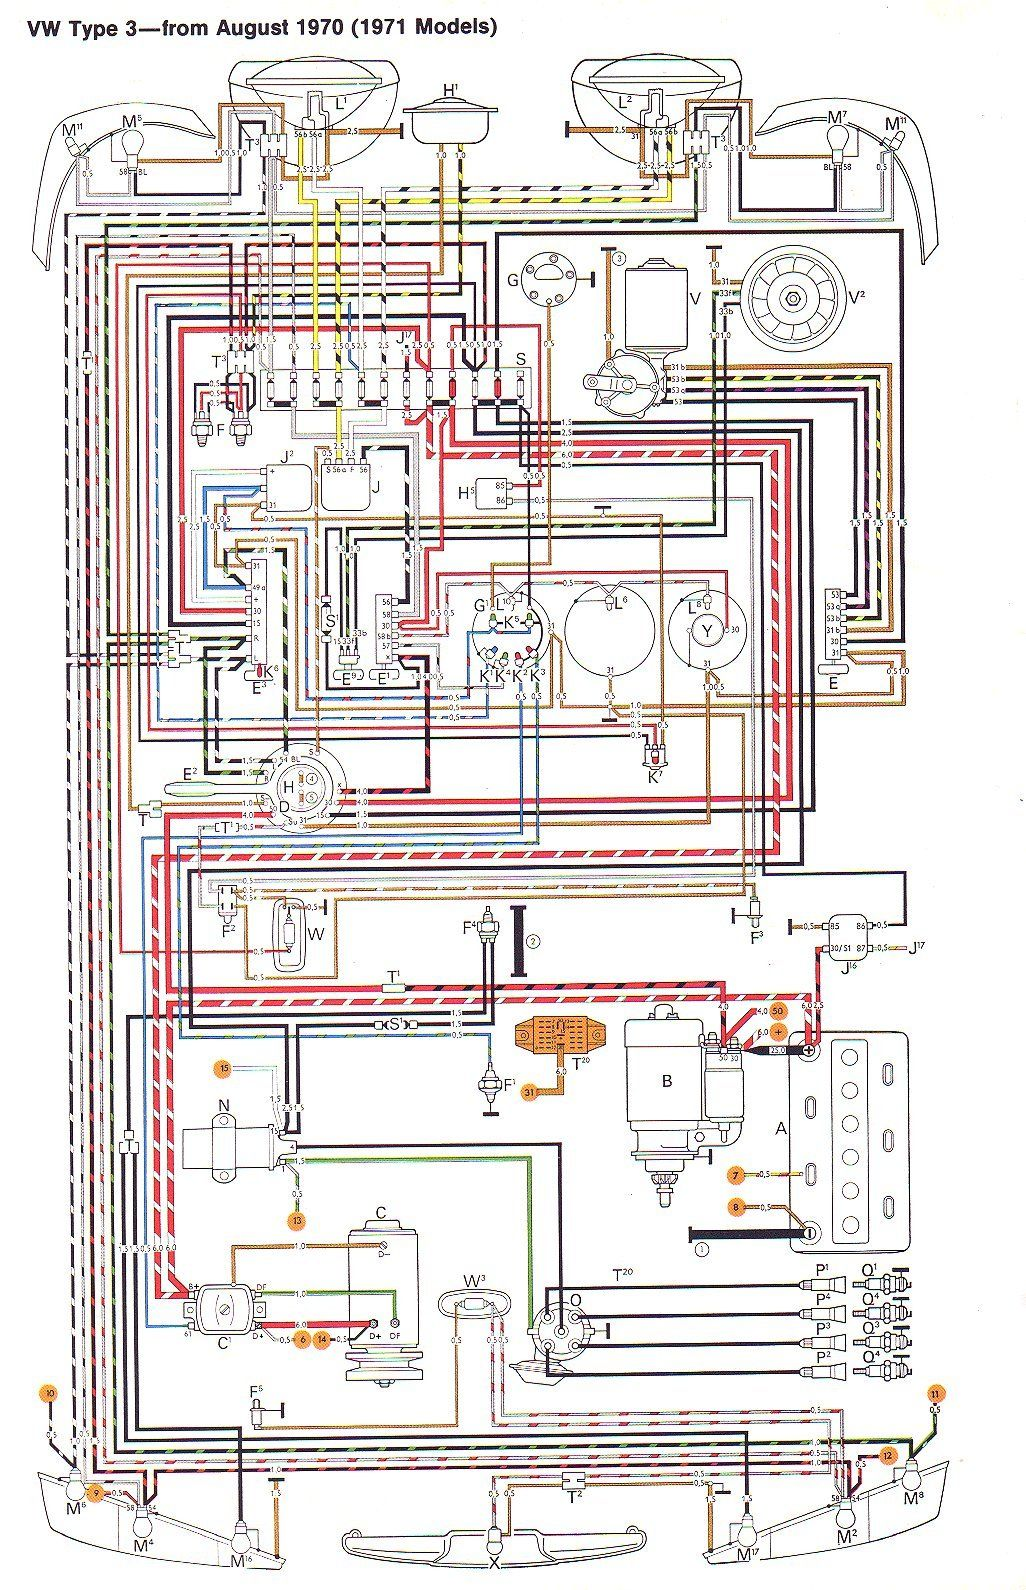 e0db58370f79a63d02d45f00cf63f44a 71 vw t3 wiring diagram car projects pinterest volkswagen 1971 vw bus wiring diagram at n-0.co